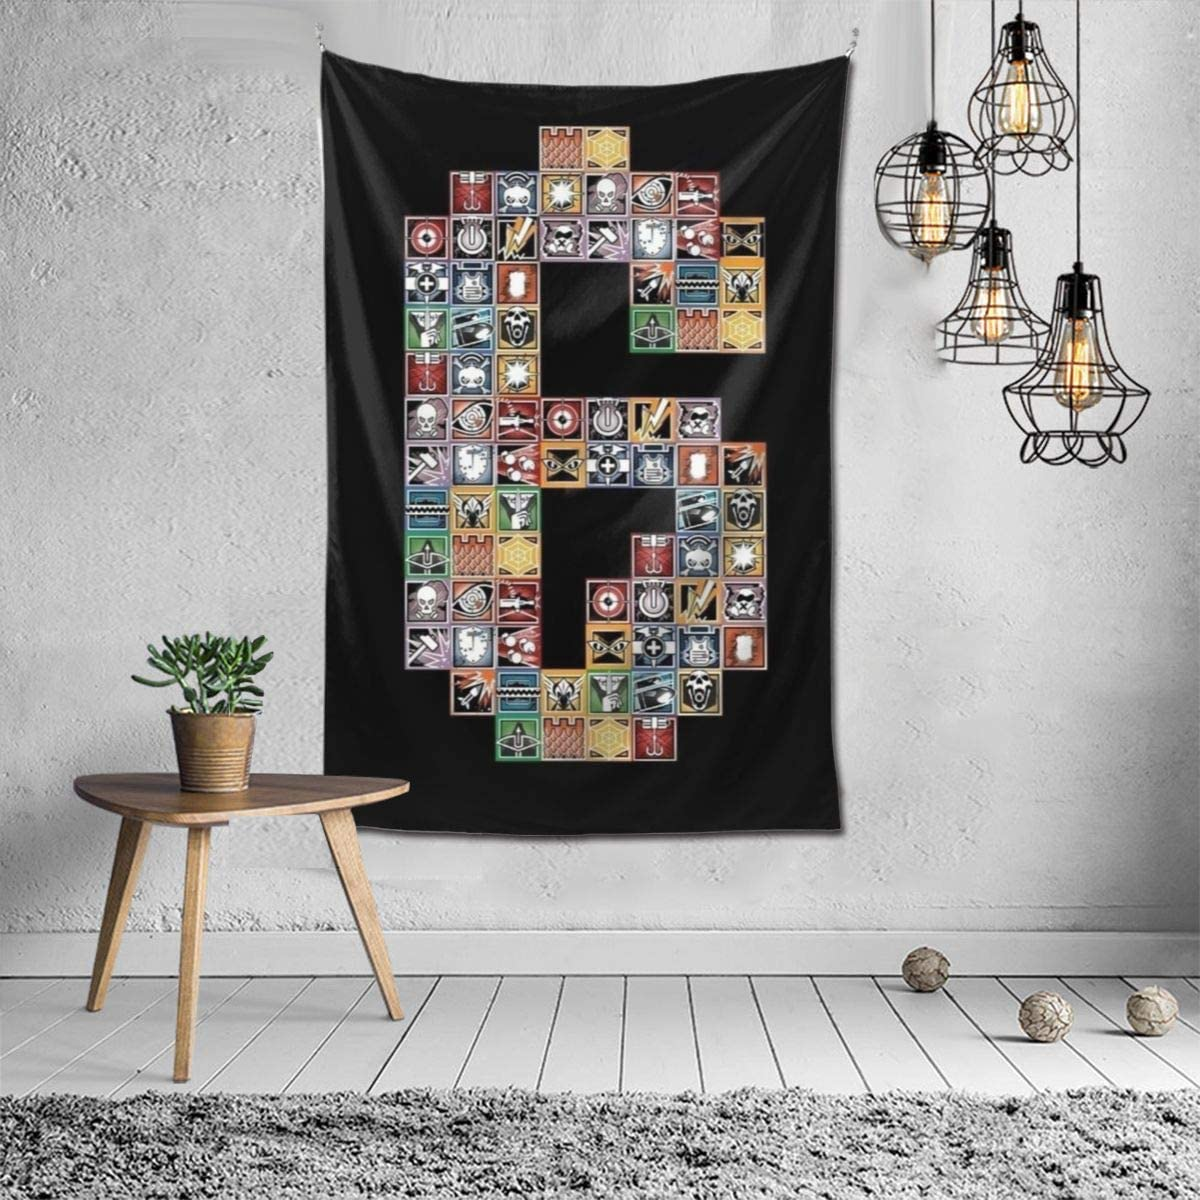 Rainbow Six Siege Personalized Custom Tapestry Art Wall Hanging Home Decor